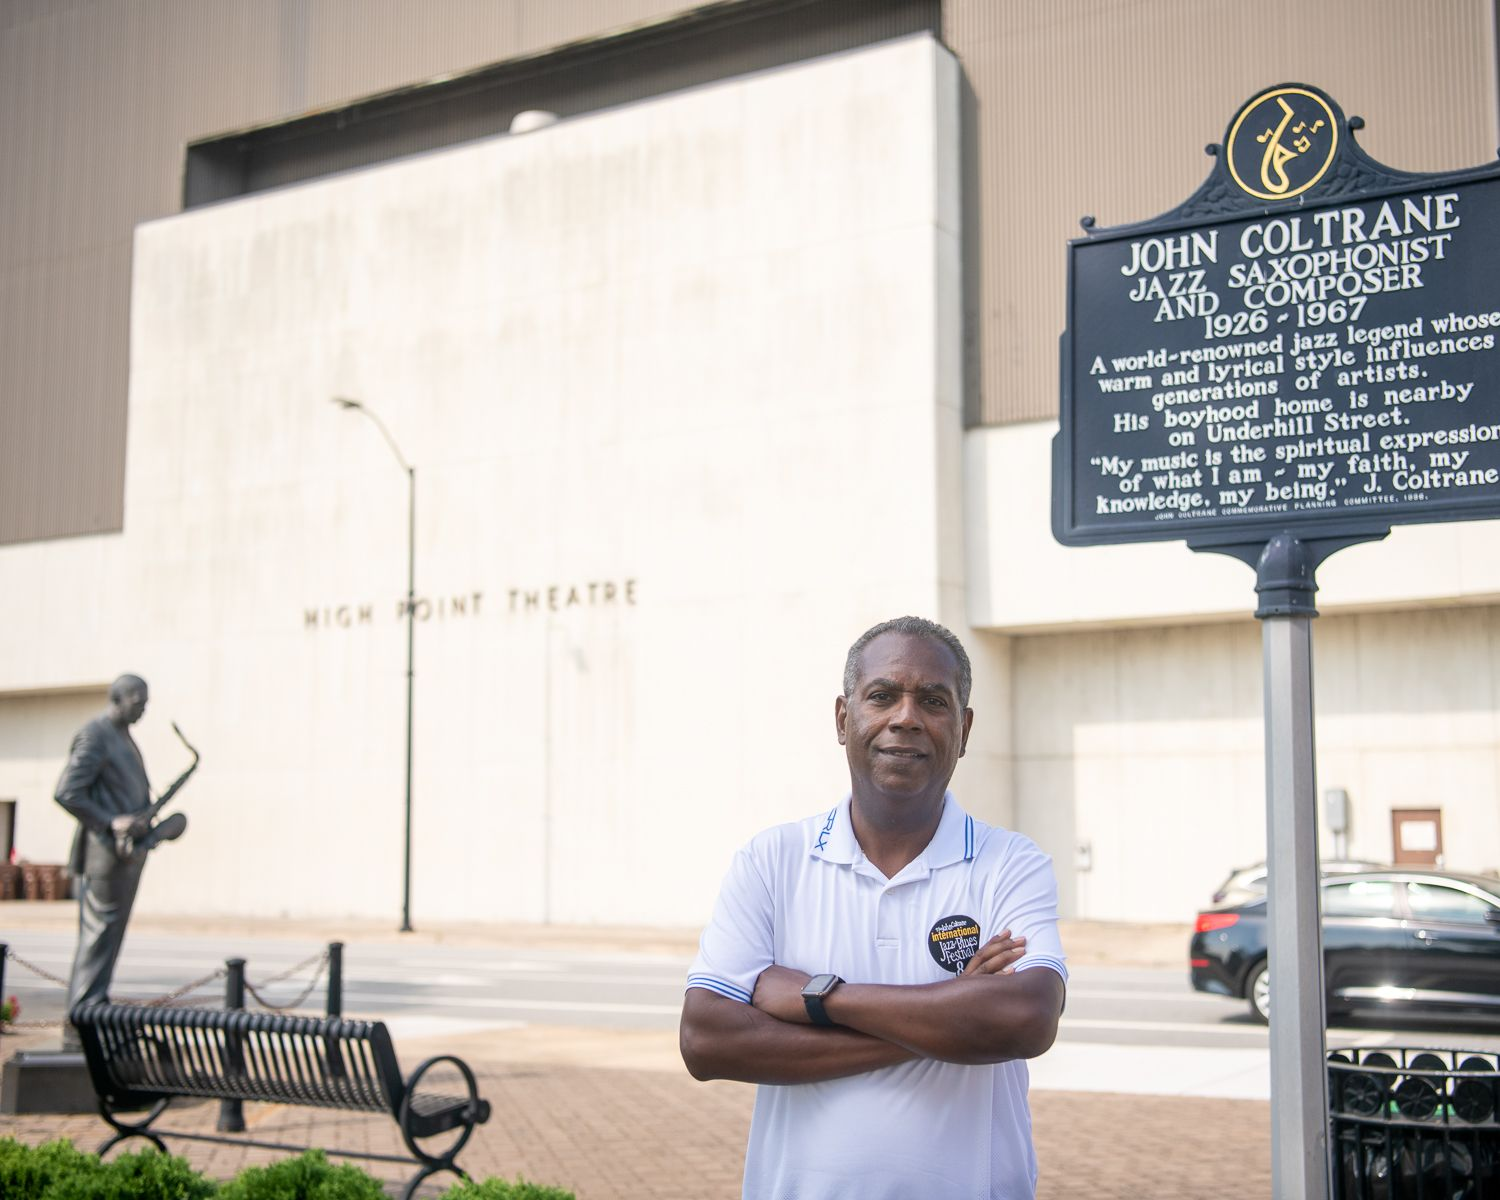 Joe Williams stands in front of John Coltrane's statue in High Point, NC.